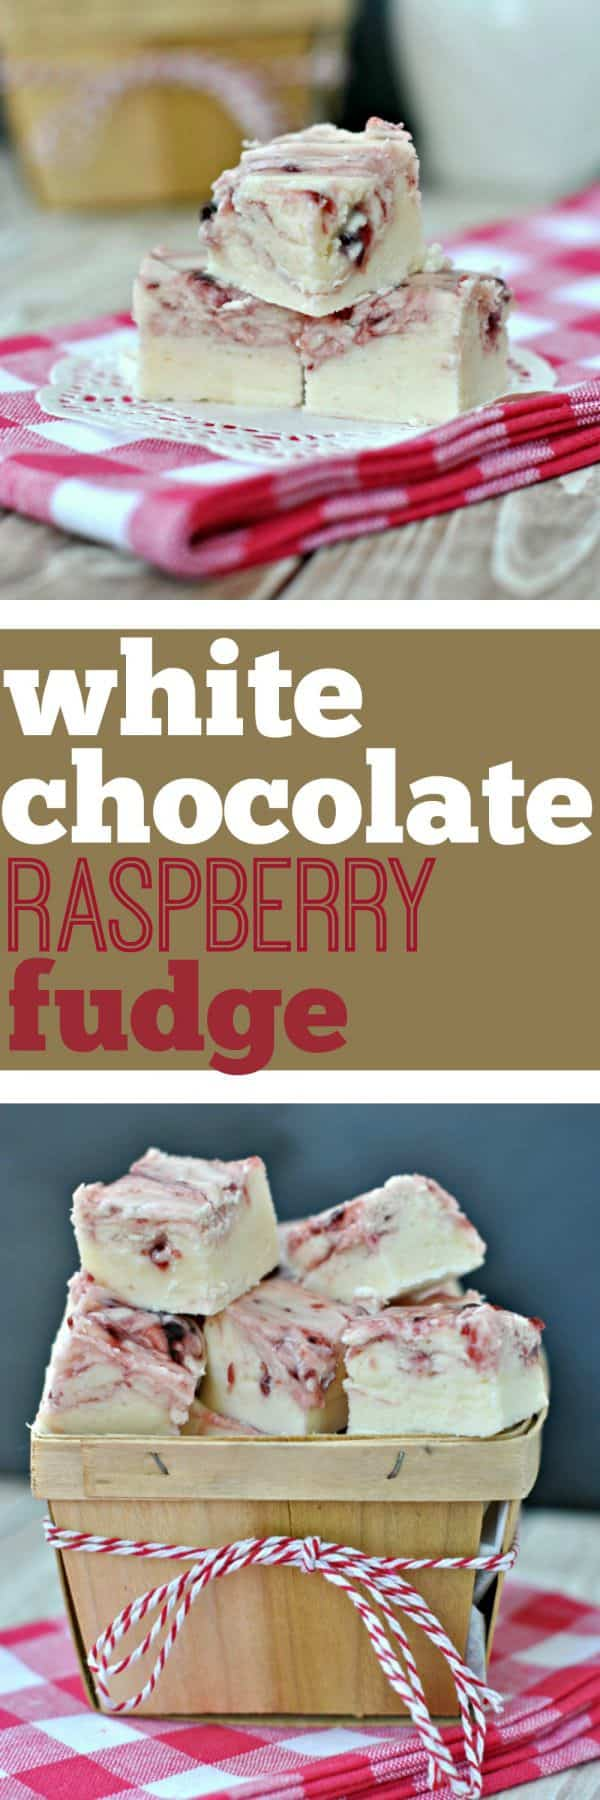 Creamy White Chocolate Fudge with a Raspberry swirl. You're going to want to sink your teeth into these!!